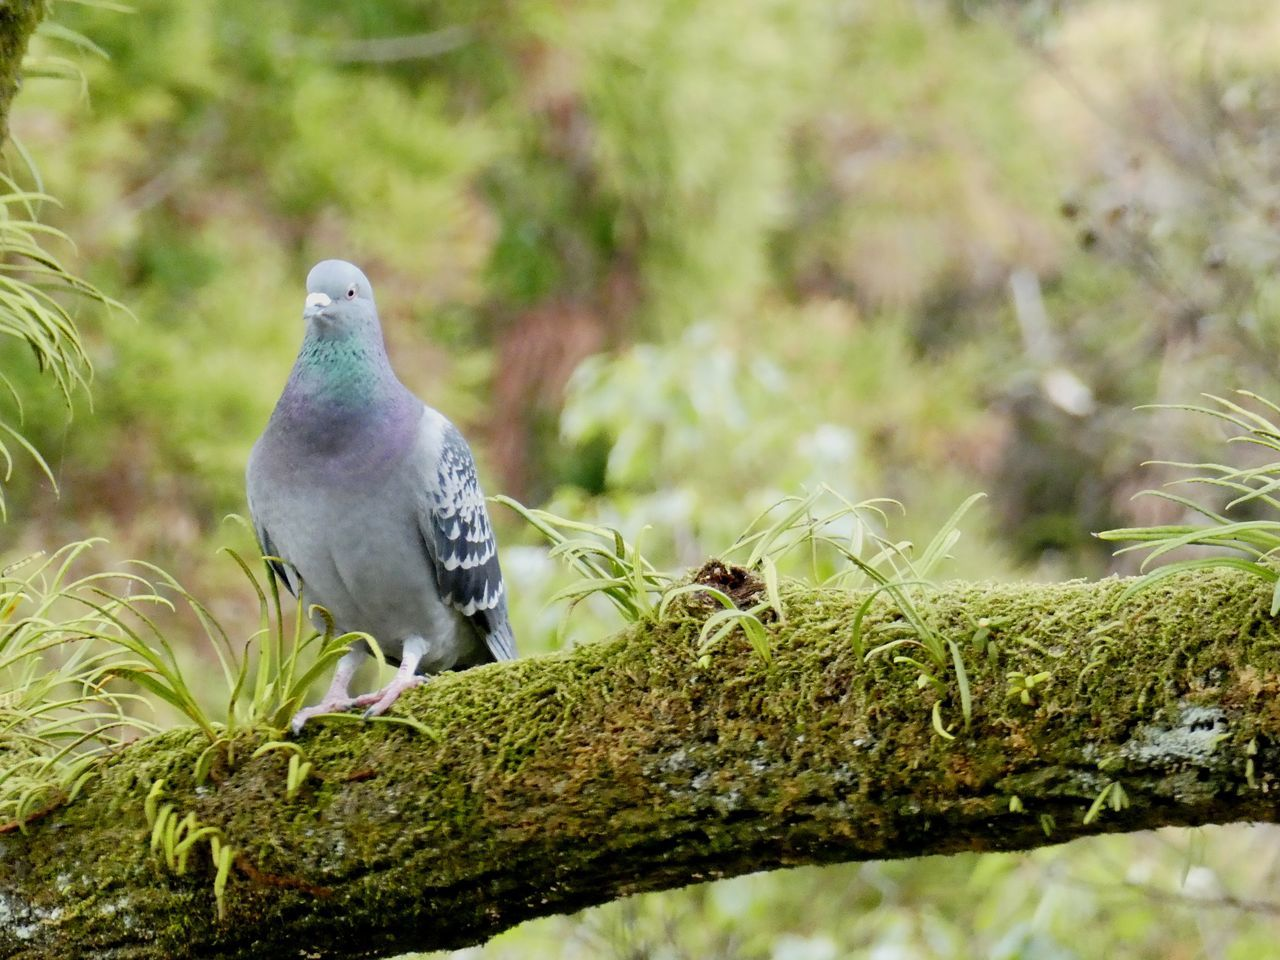 bird, animal themes, animals in the wild, one animal, perching, no people, nature, animal wildlife, day, outdoors, close-up